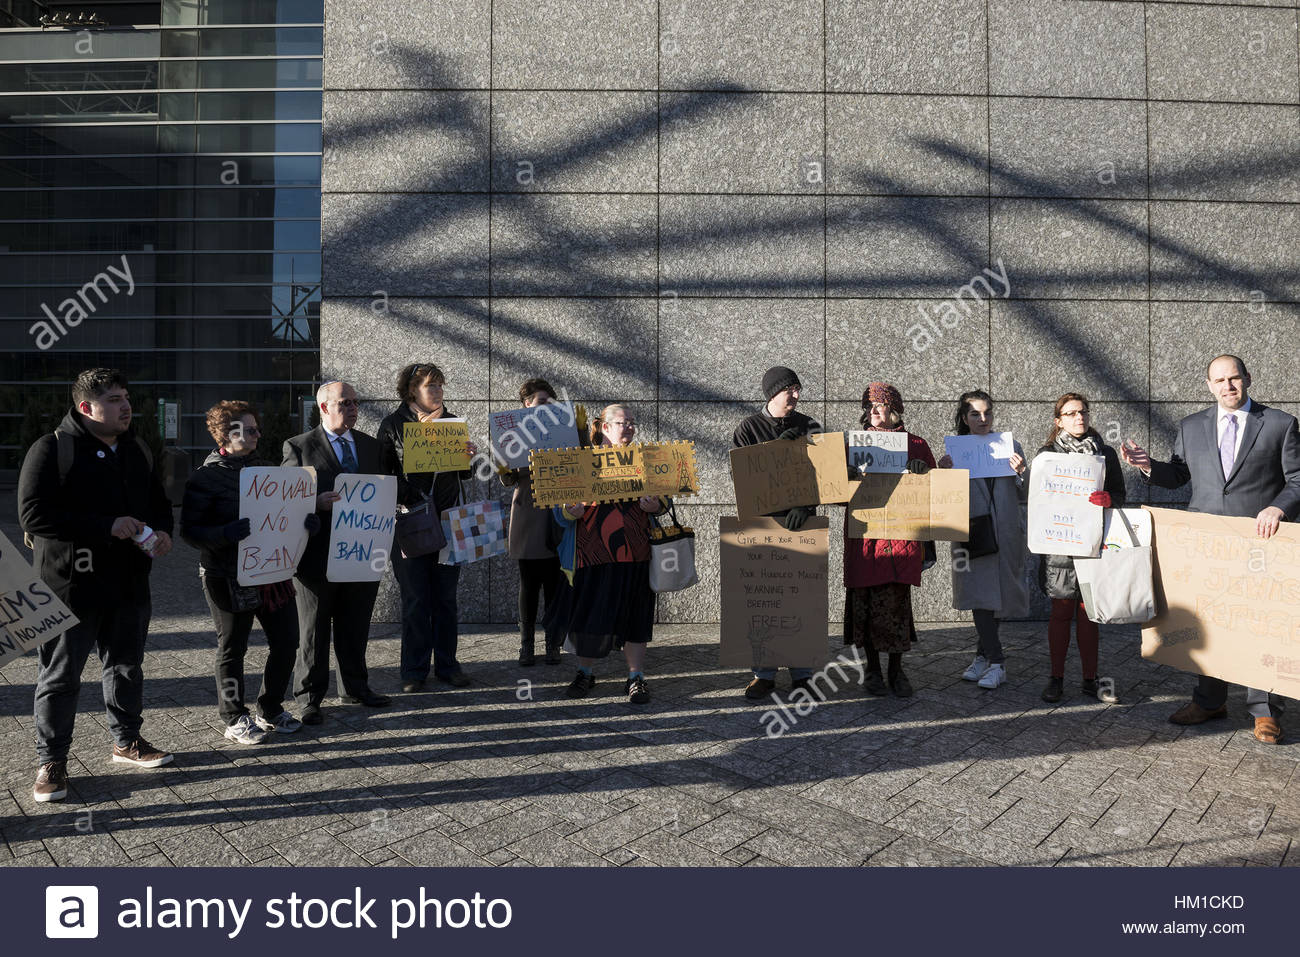 Tokyo, Japan. 31st Jan, 2017. People hold up placards to protest against US President Donald Trump's executive - Stock Image